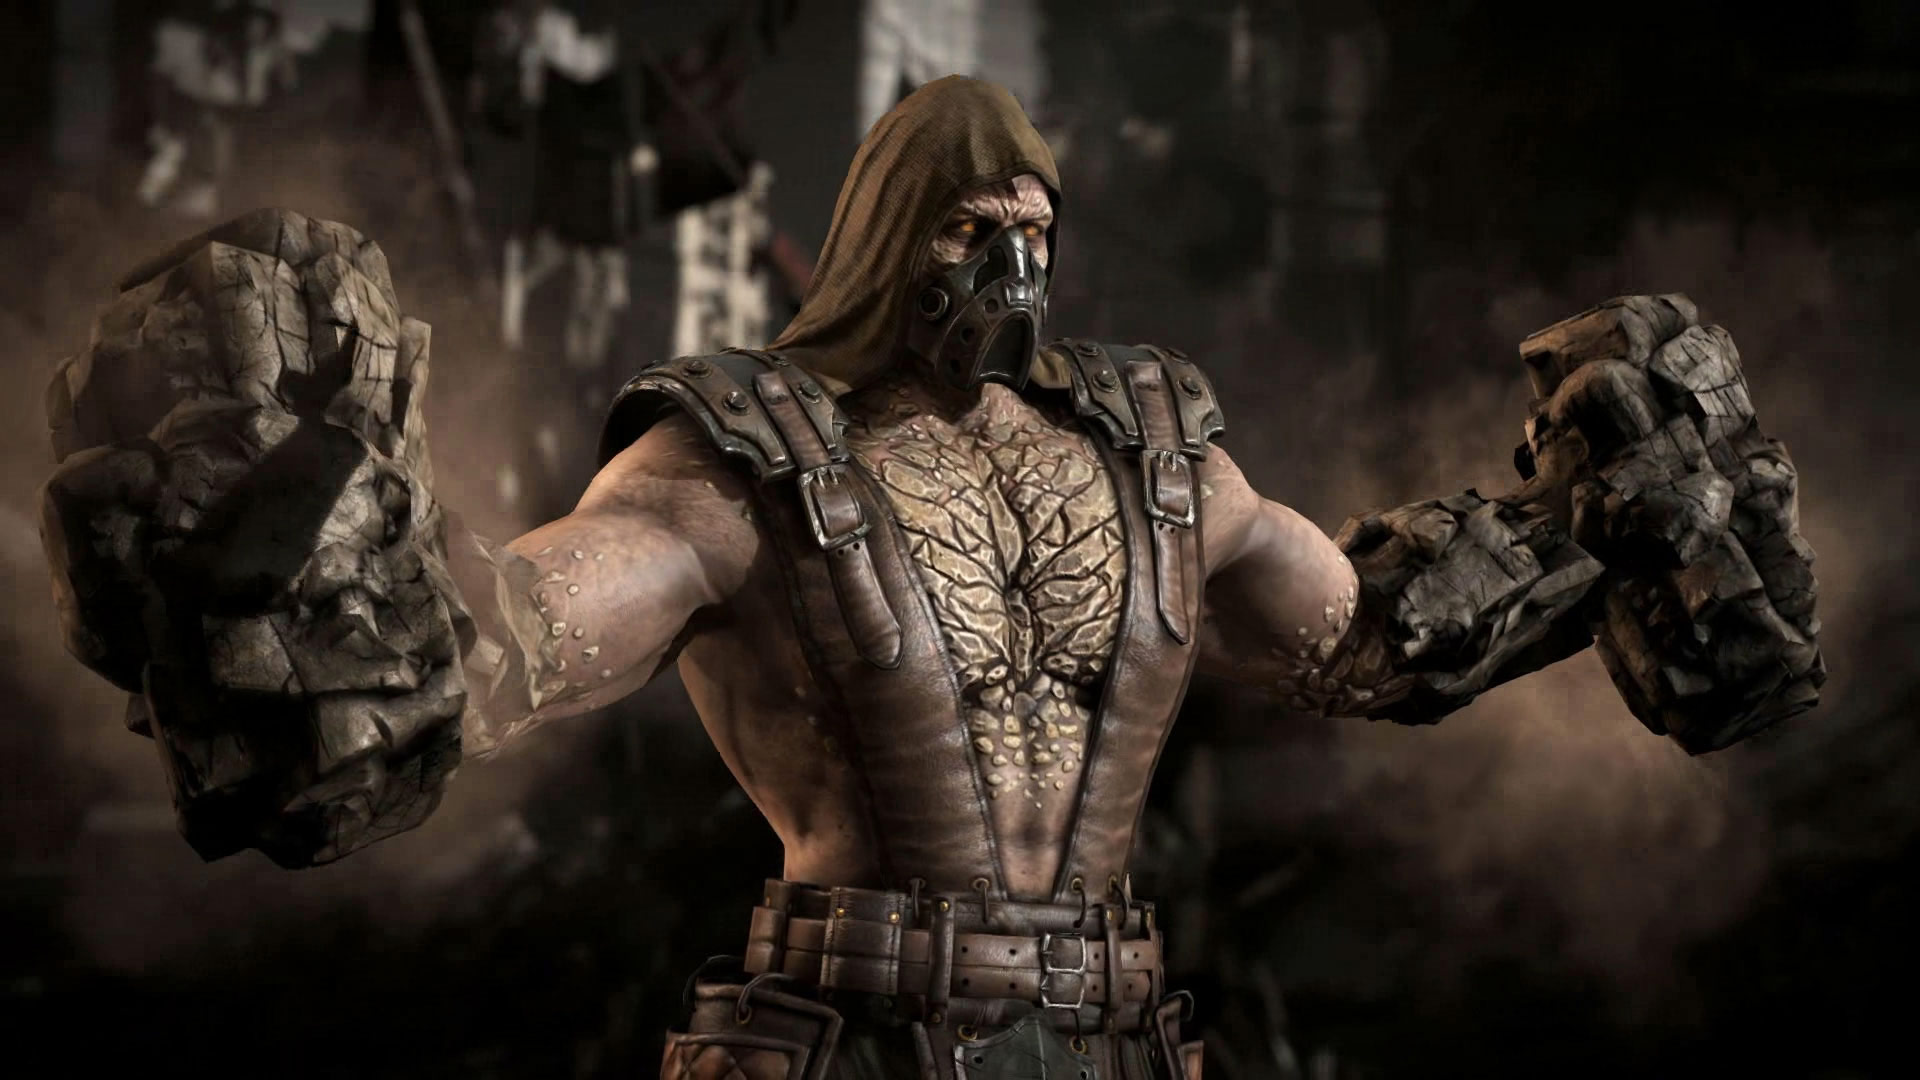 First look at Tremor in MKX 2 out of 8 image gallery